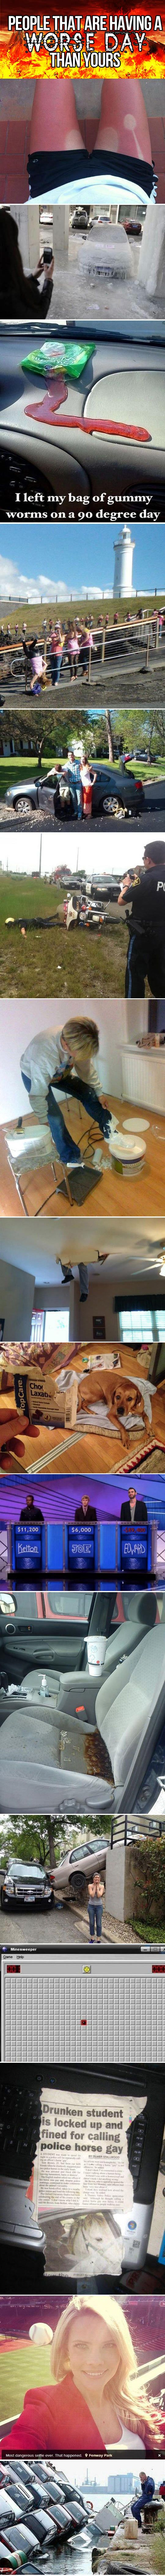 People that are having a worse day than yours… #compartirvideos #funnypictures #uploadfunny